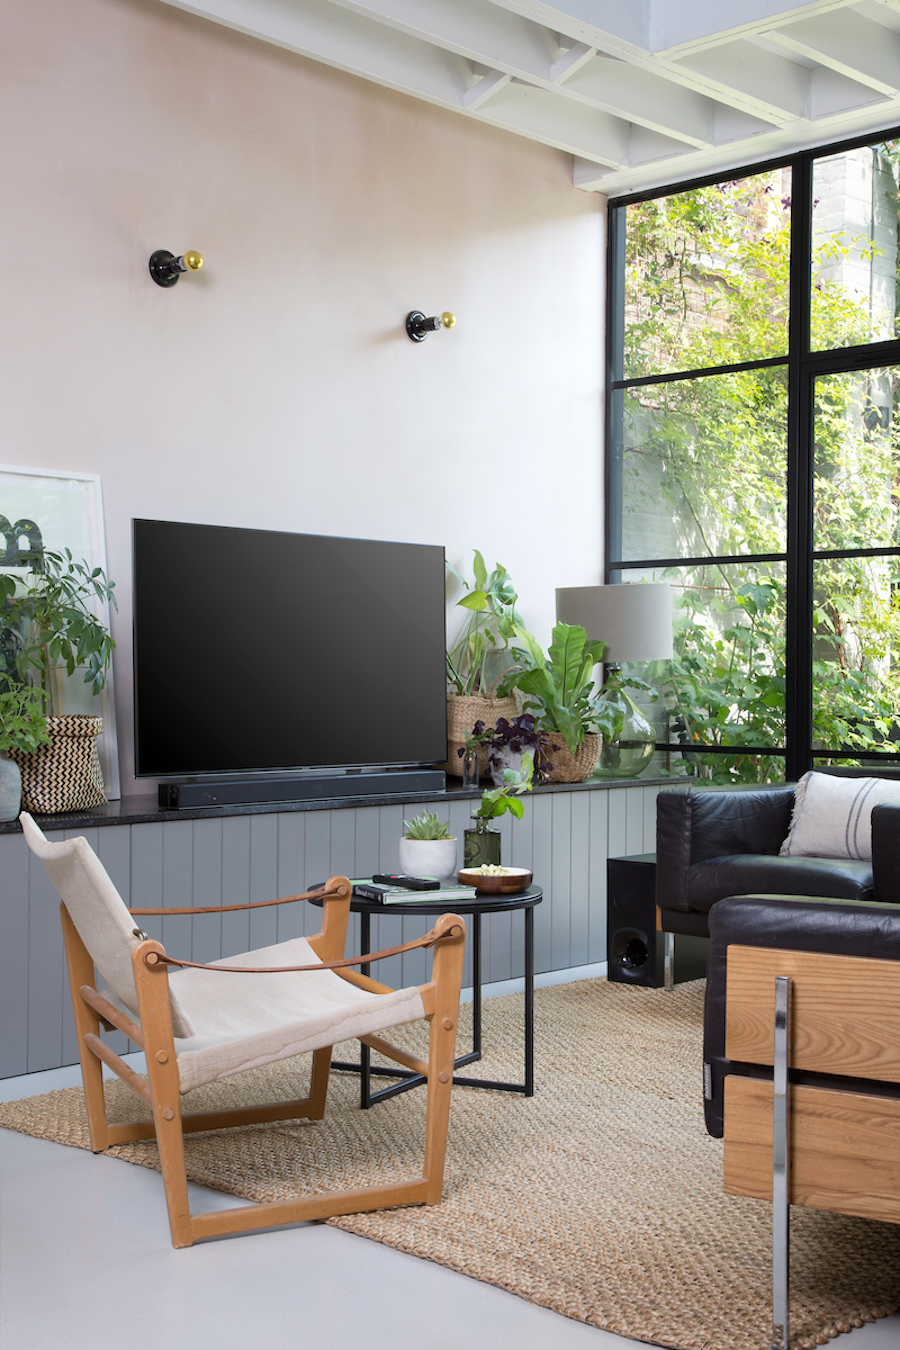 Integrate Cinema Style Tech Into The Living Room With Style